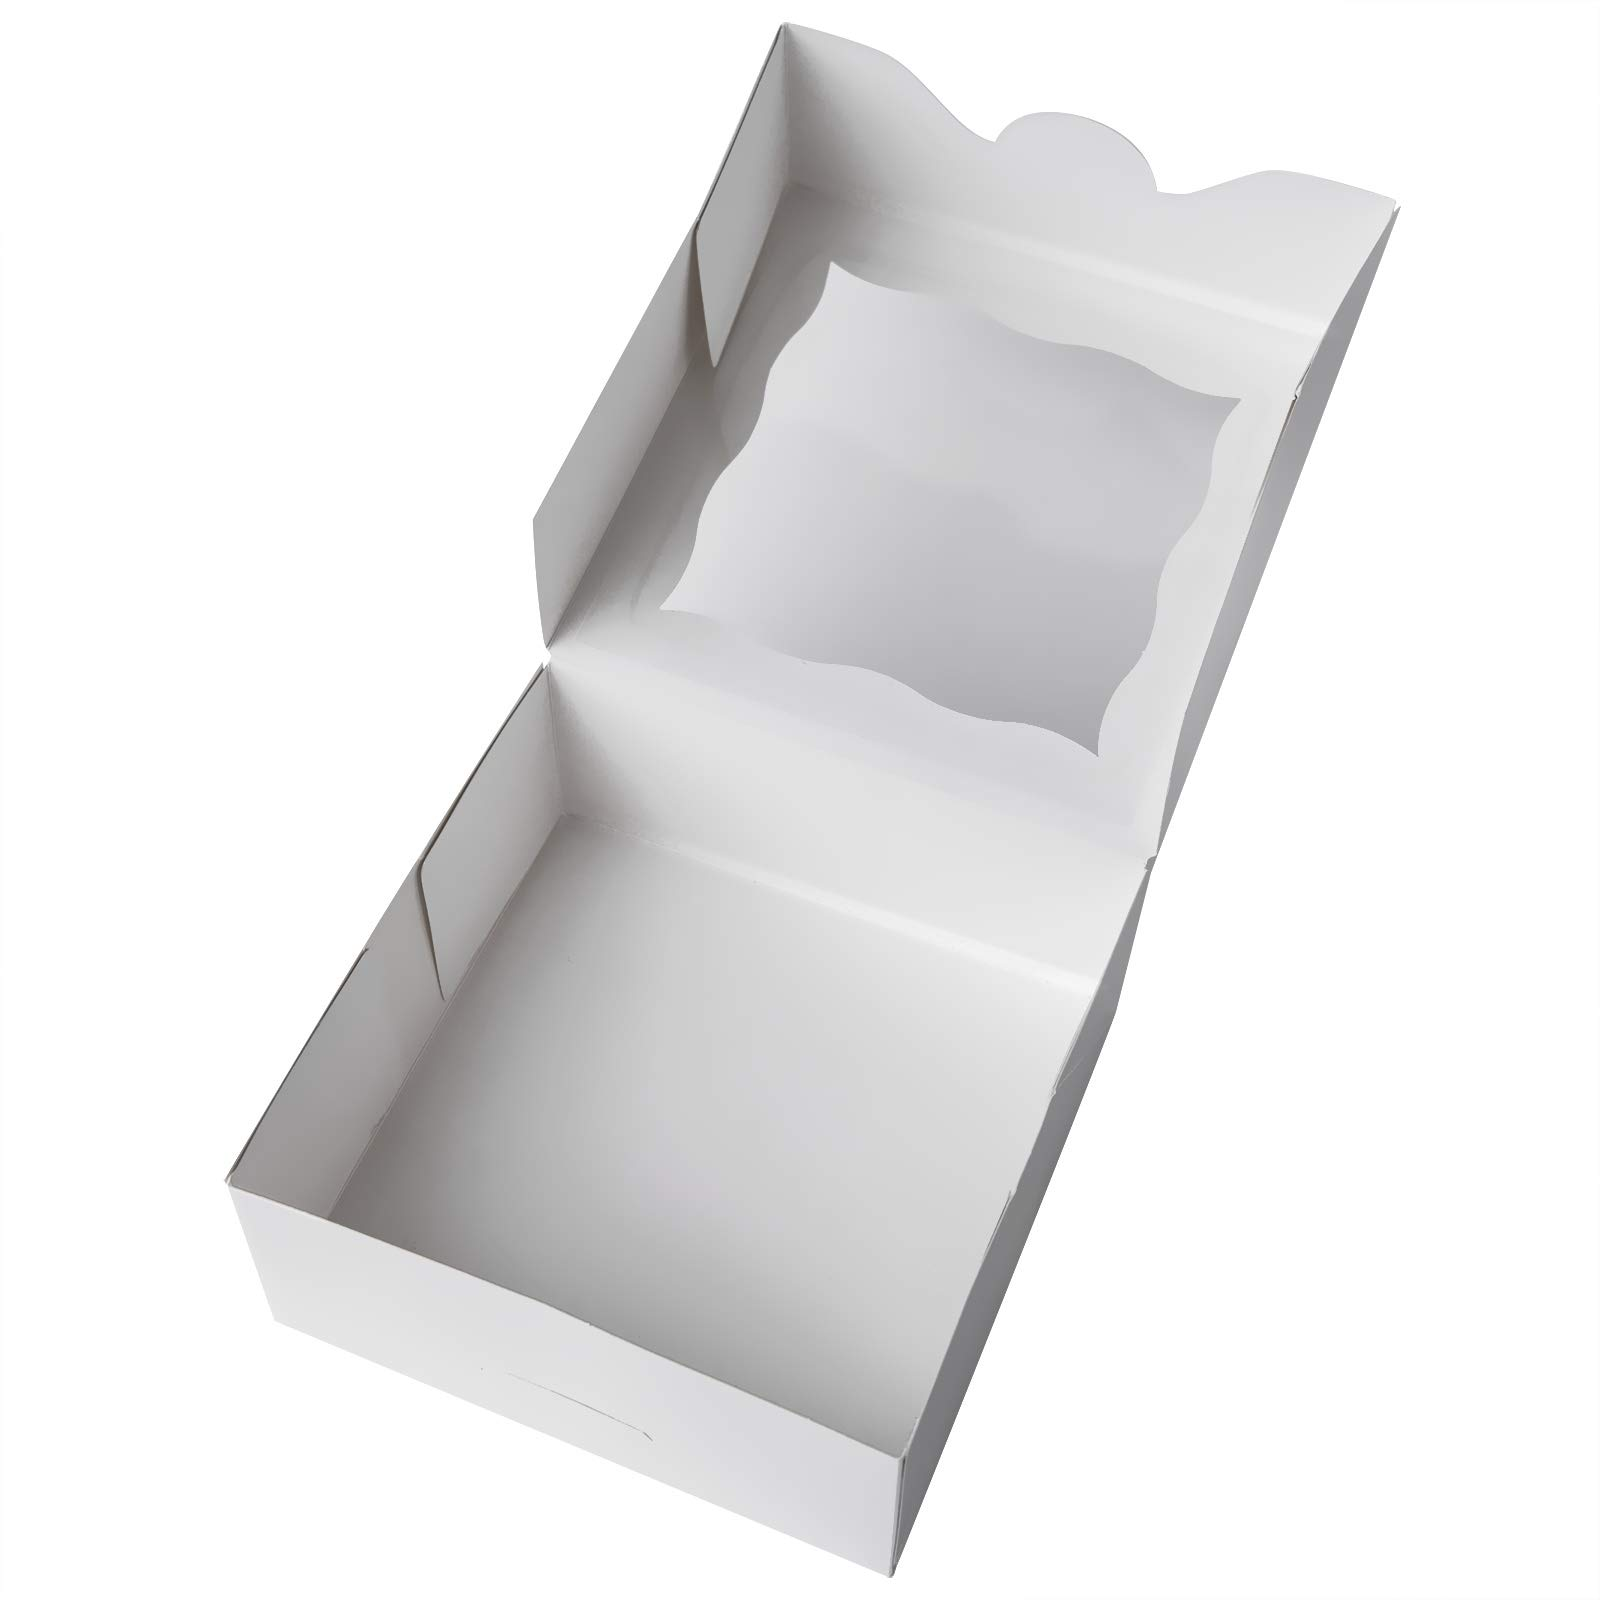 ONE MORE 6''White Bakery Boxes with pvc Window for Pie and Cookies Boxes Small Natural Craft Paper Box 6x6x2.5inch,12 of Pack by ONE MORE (Image #2)